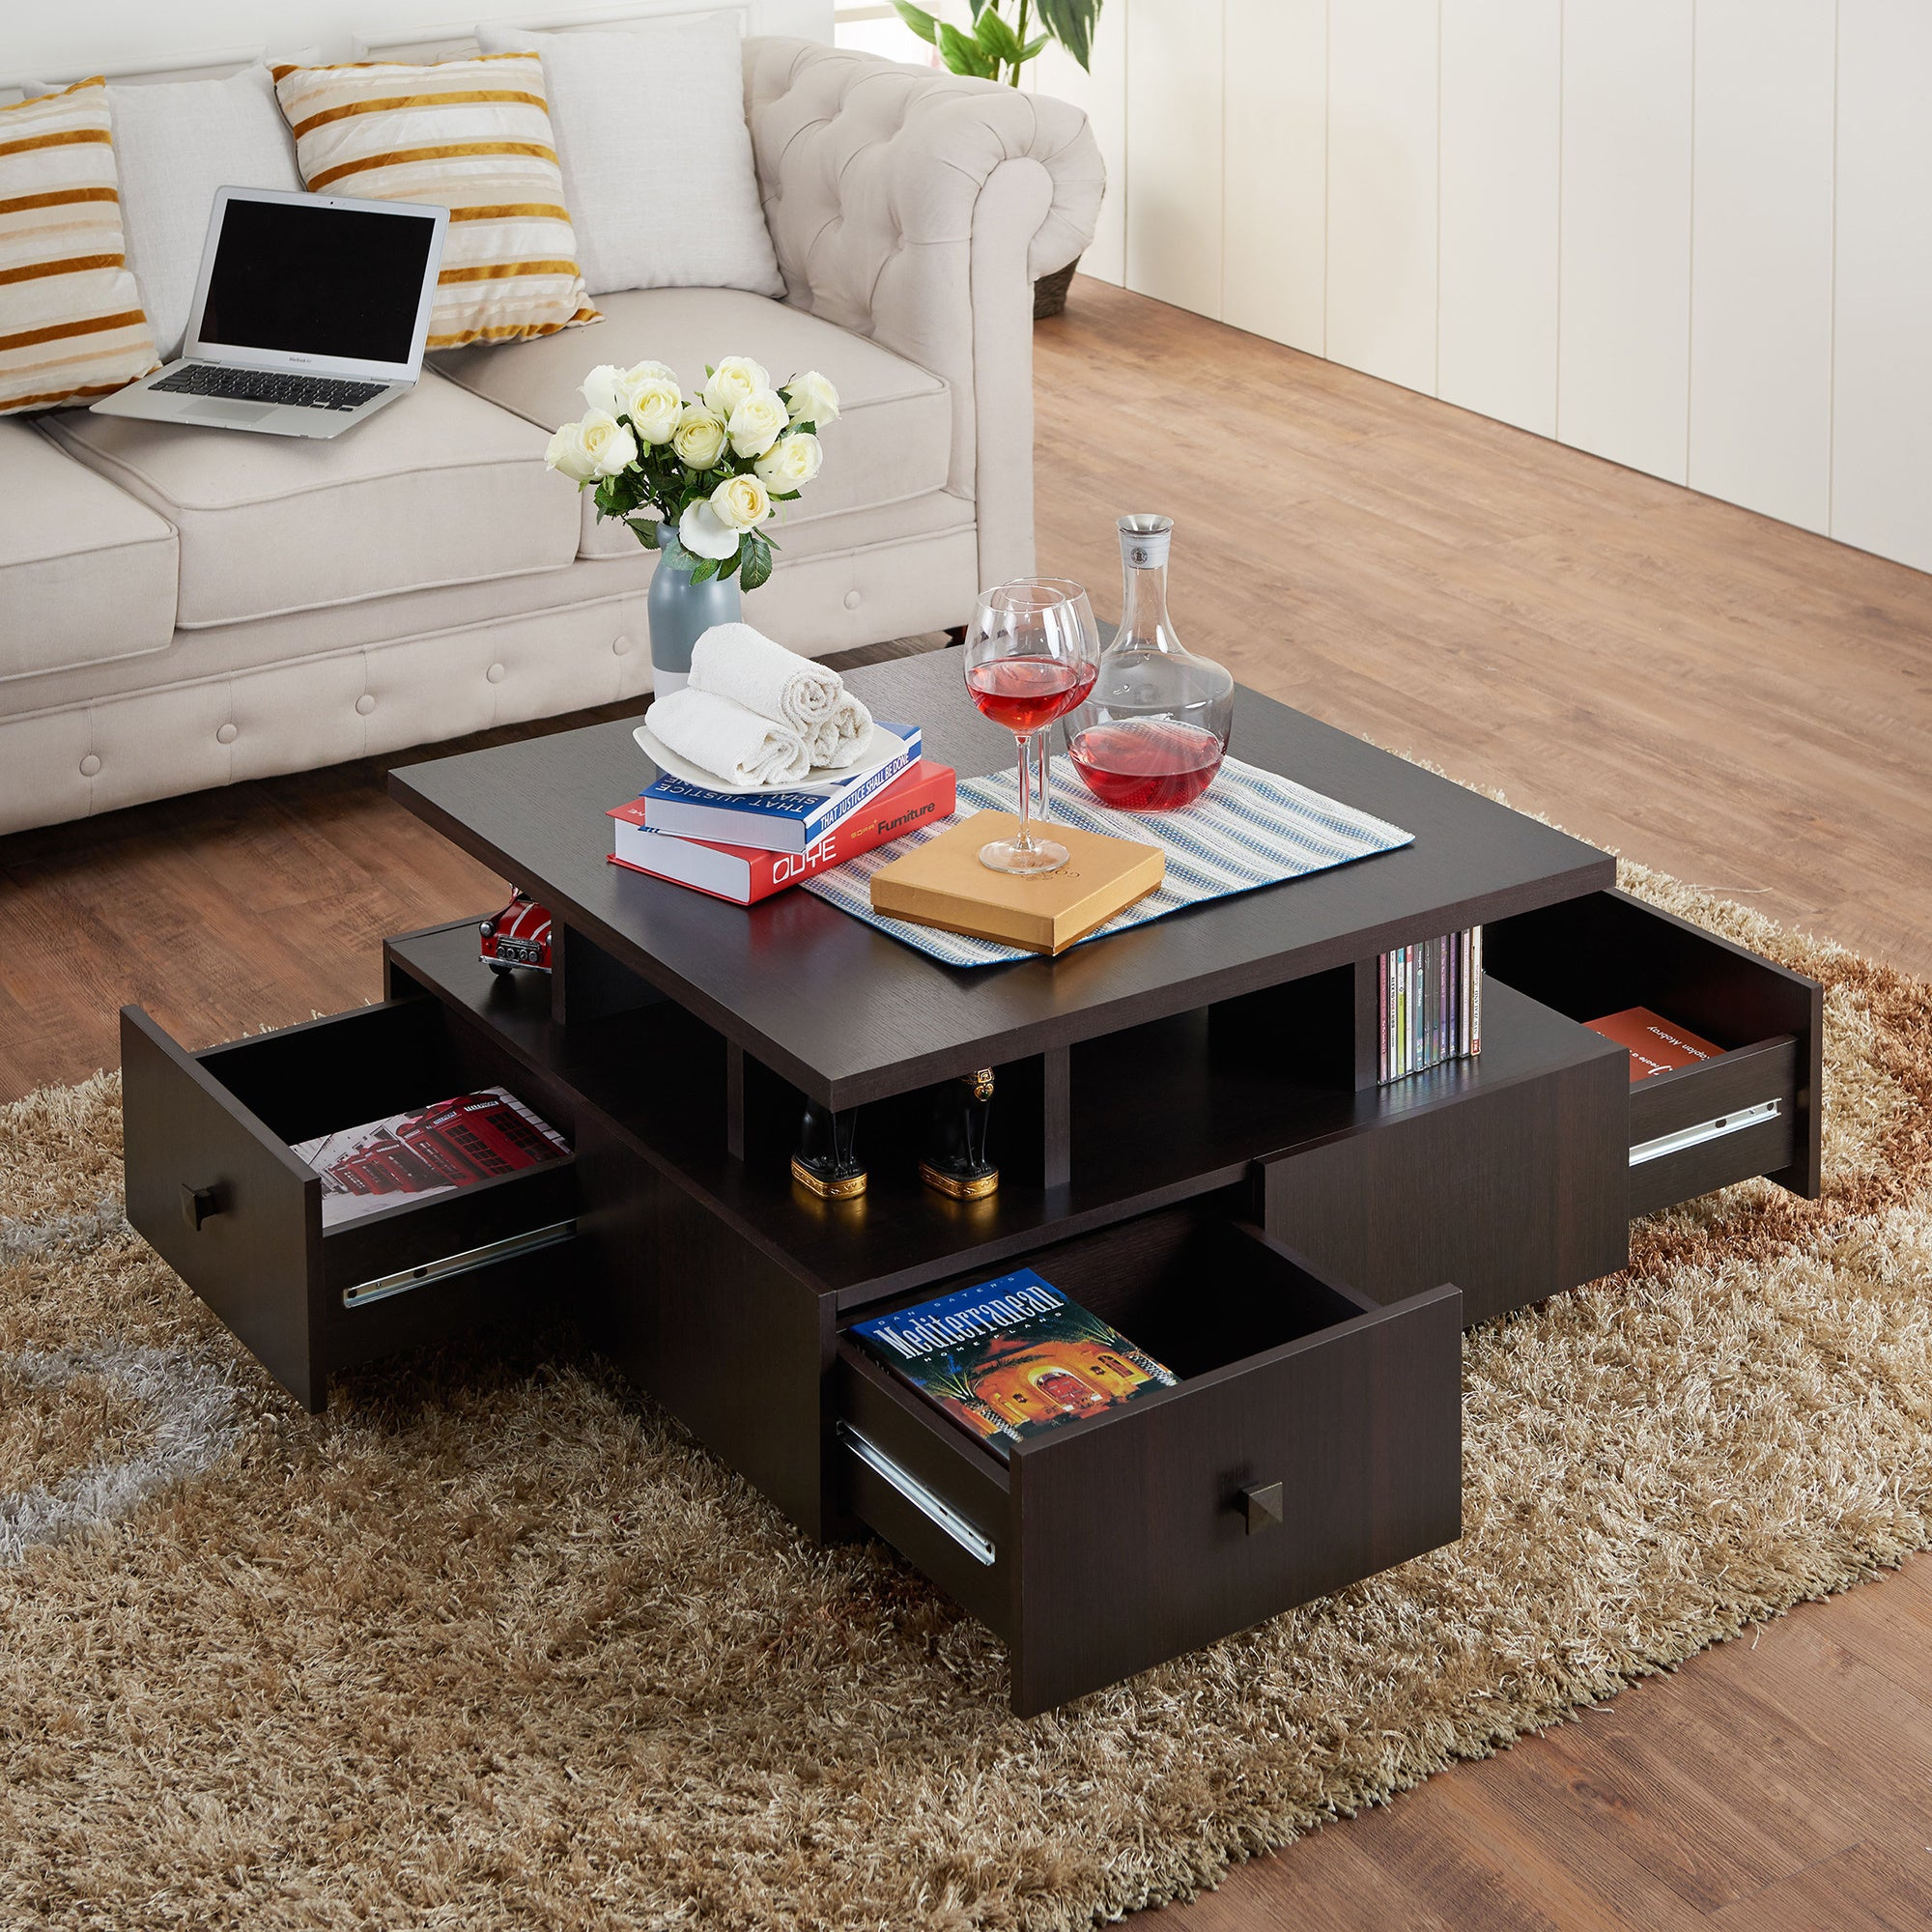 Furniture Of America Terrenal Tiered Espresso 4 Drawer Coffee Table   Free  Shipping Today   Overstock   18108803